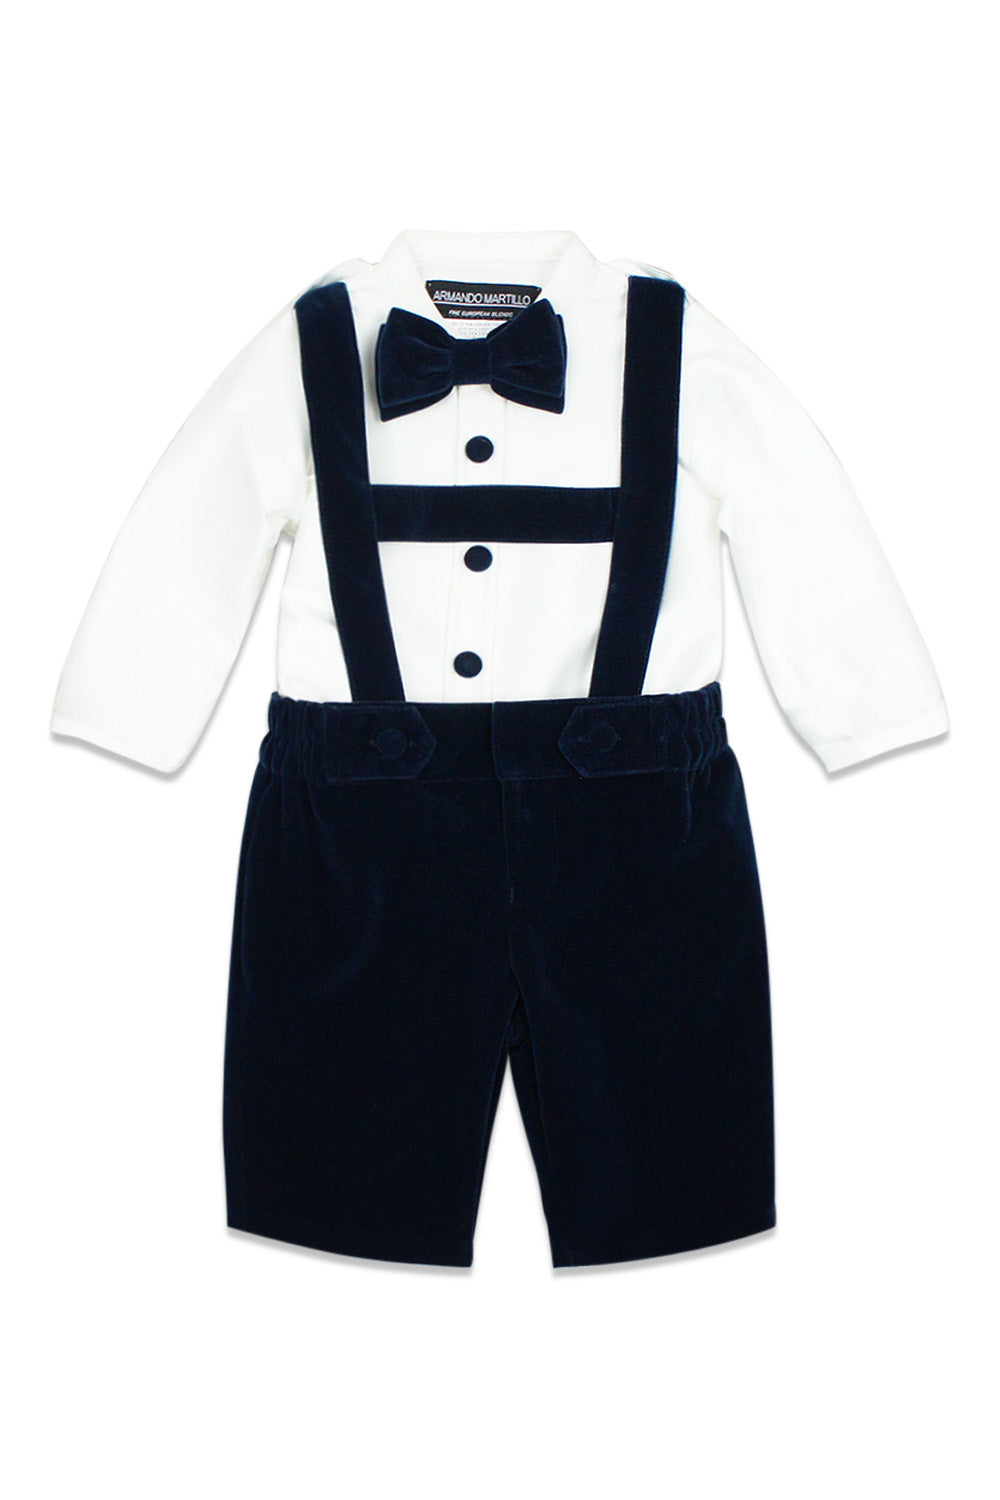 Armando Martillo Indigo Two Piece Velour Suspenders Set